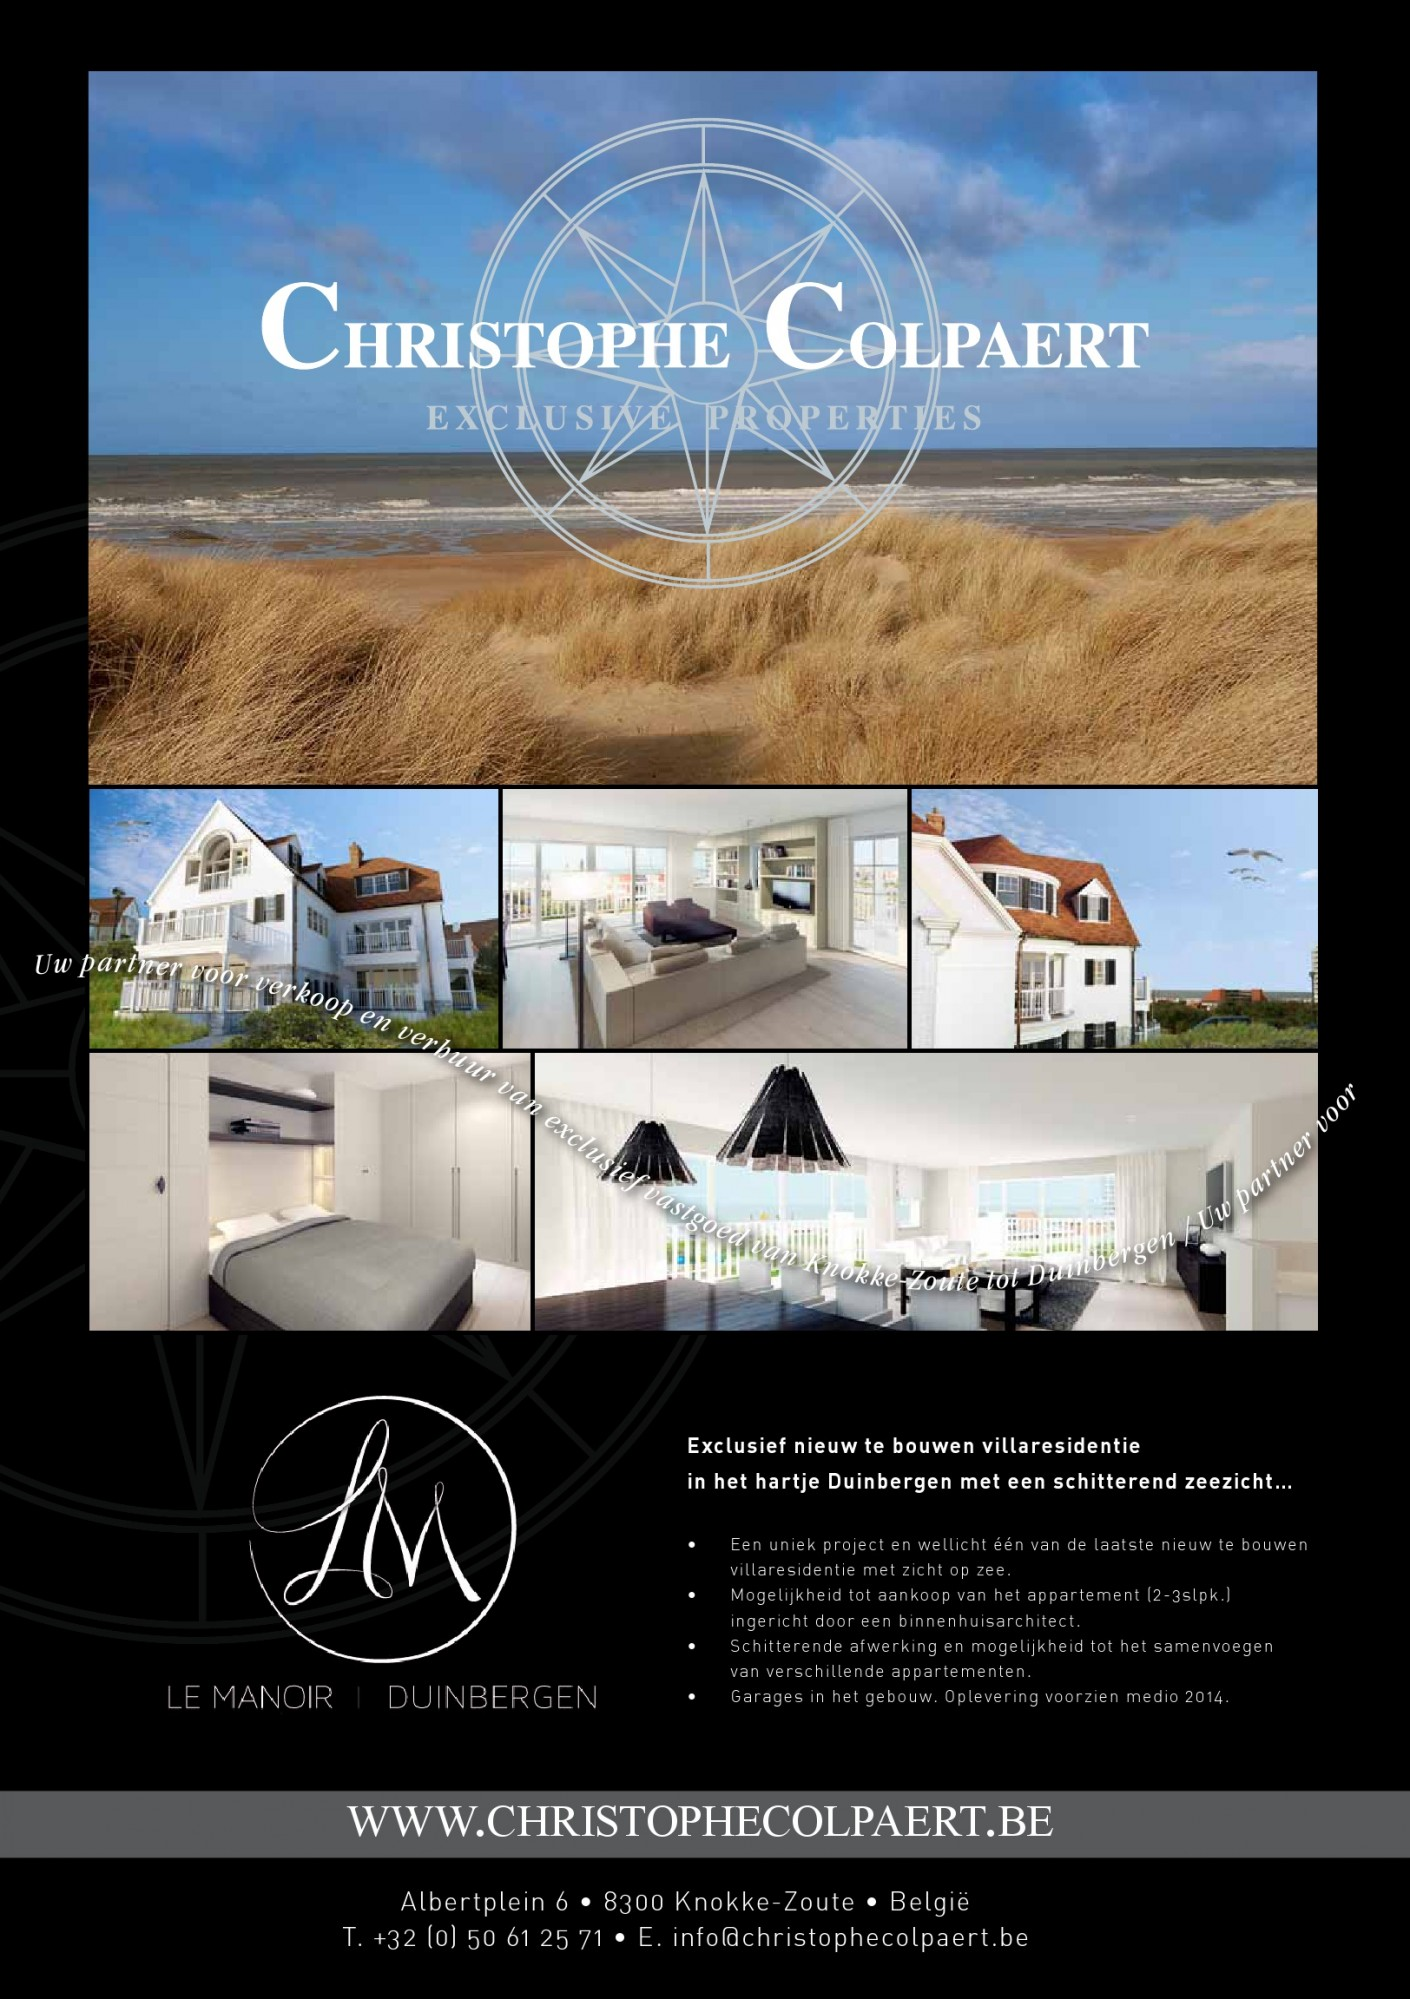 Parution KNOKKE ACTUEEL - MAGAZINE - Christophe Colpaert Exclusive Properties